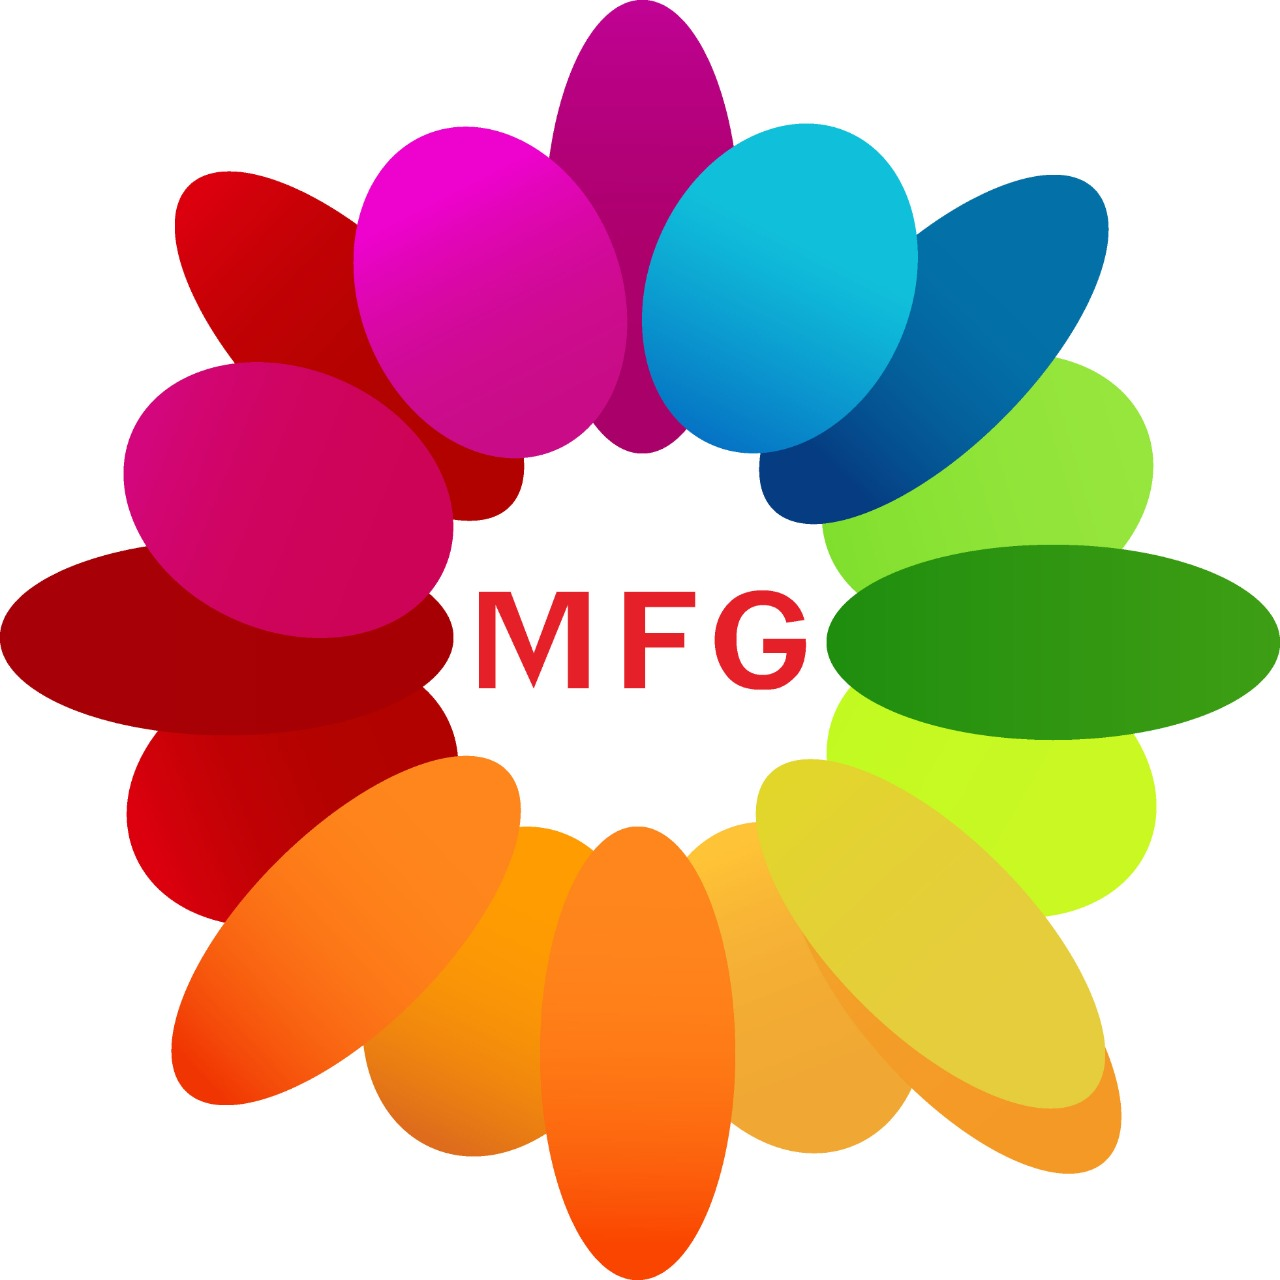 Bunch of 20 red roses with 1 kg heart shape butterscotch heart shape cake with 5 blown balloons